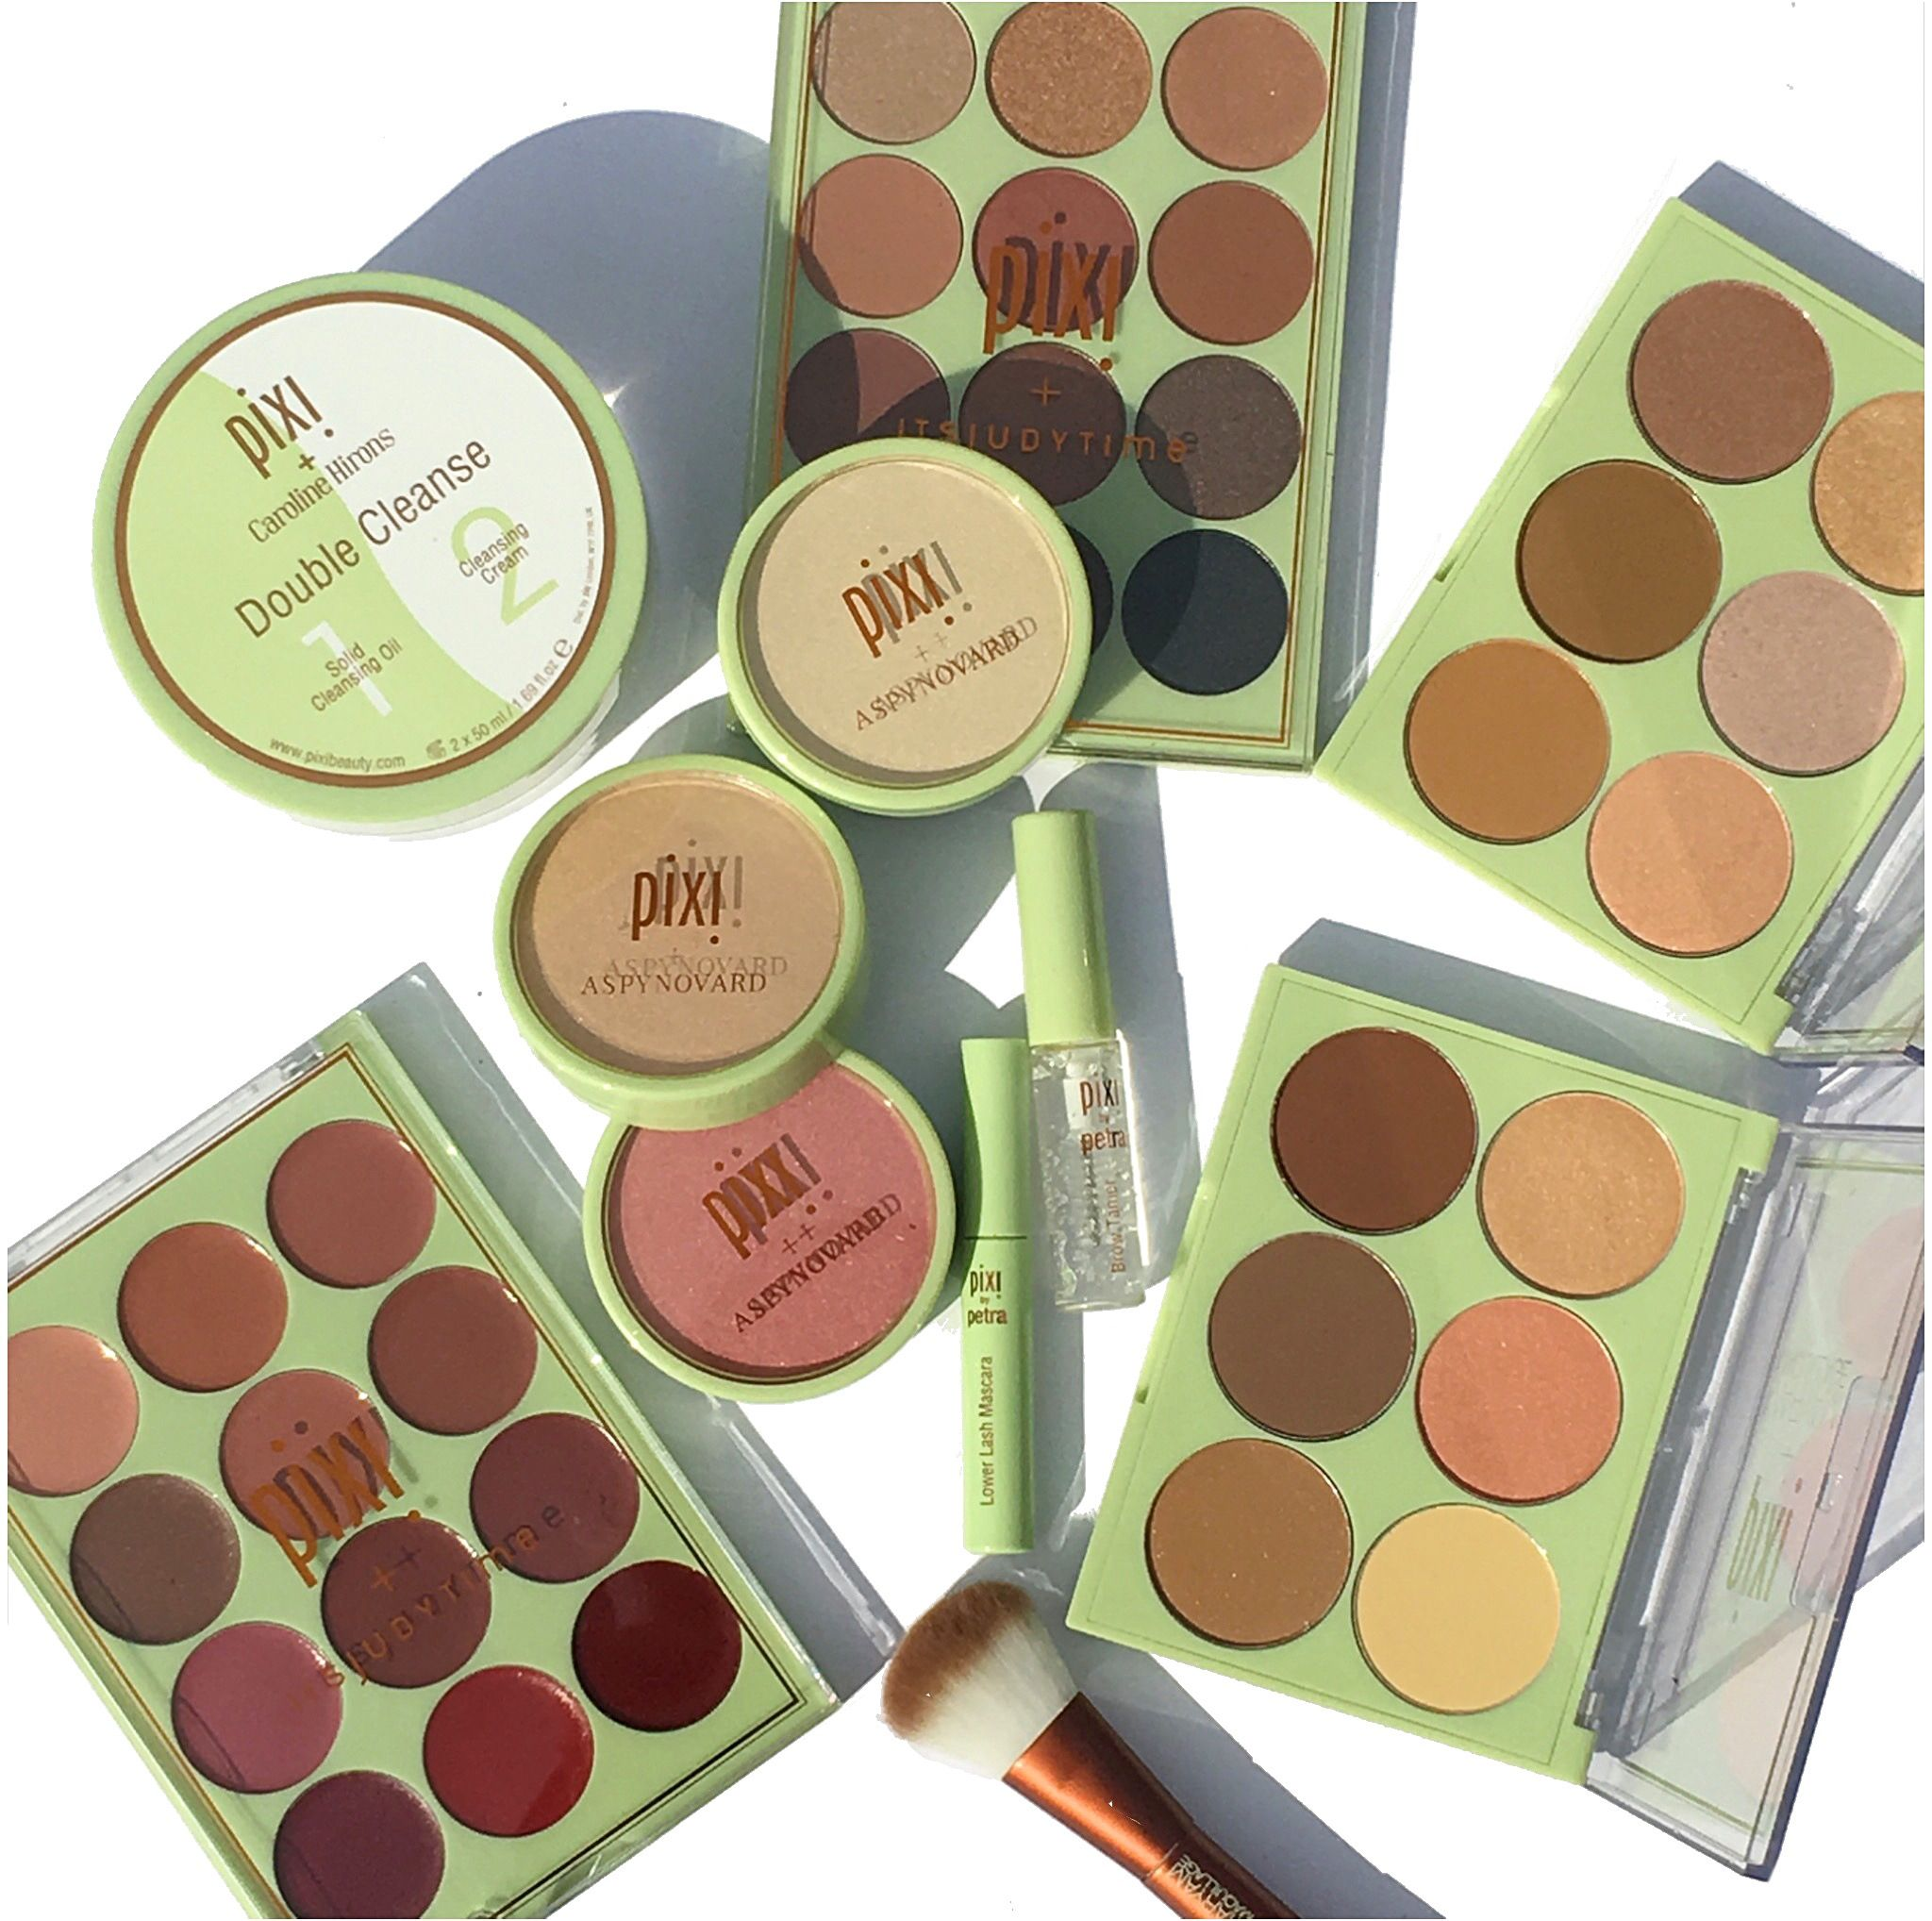 PIXI BEAUTY PIXI PRETTIES Overview & Swatches: It's Judy Time, Aspyn Ovard, Caroline Hirons, Maryam Maquillage